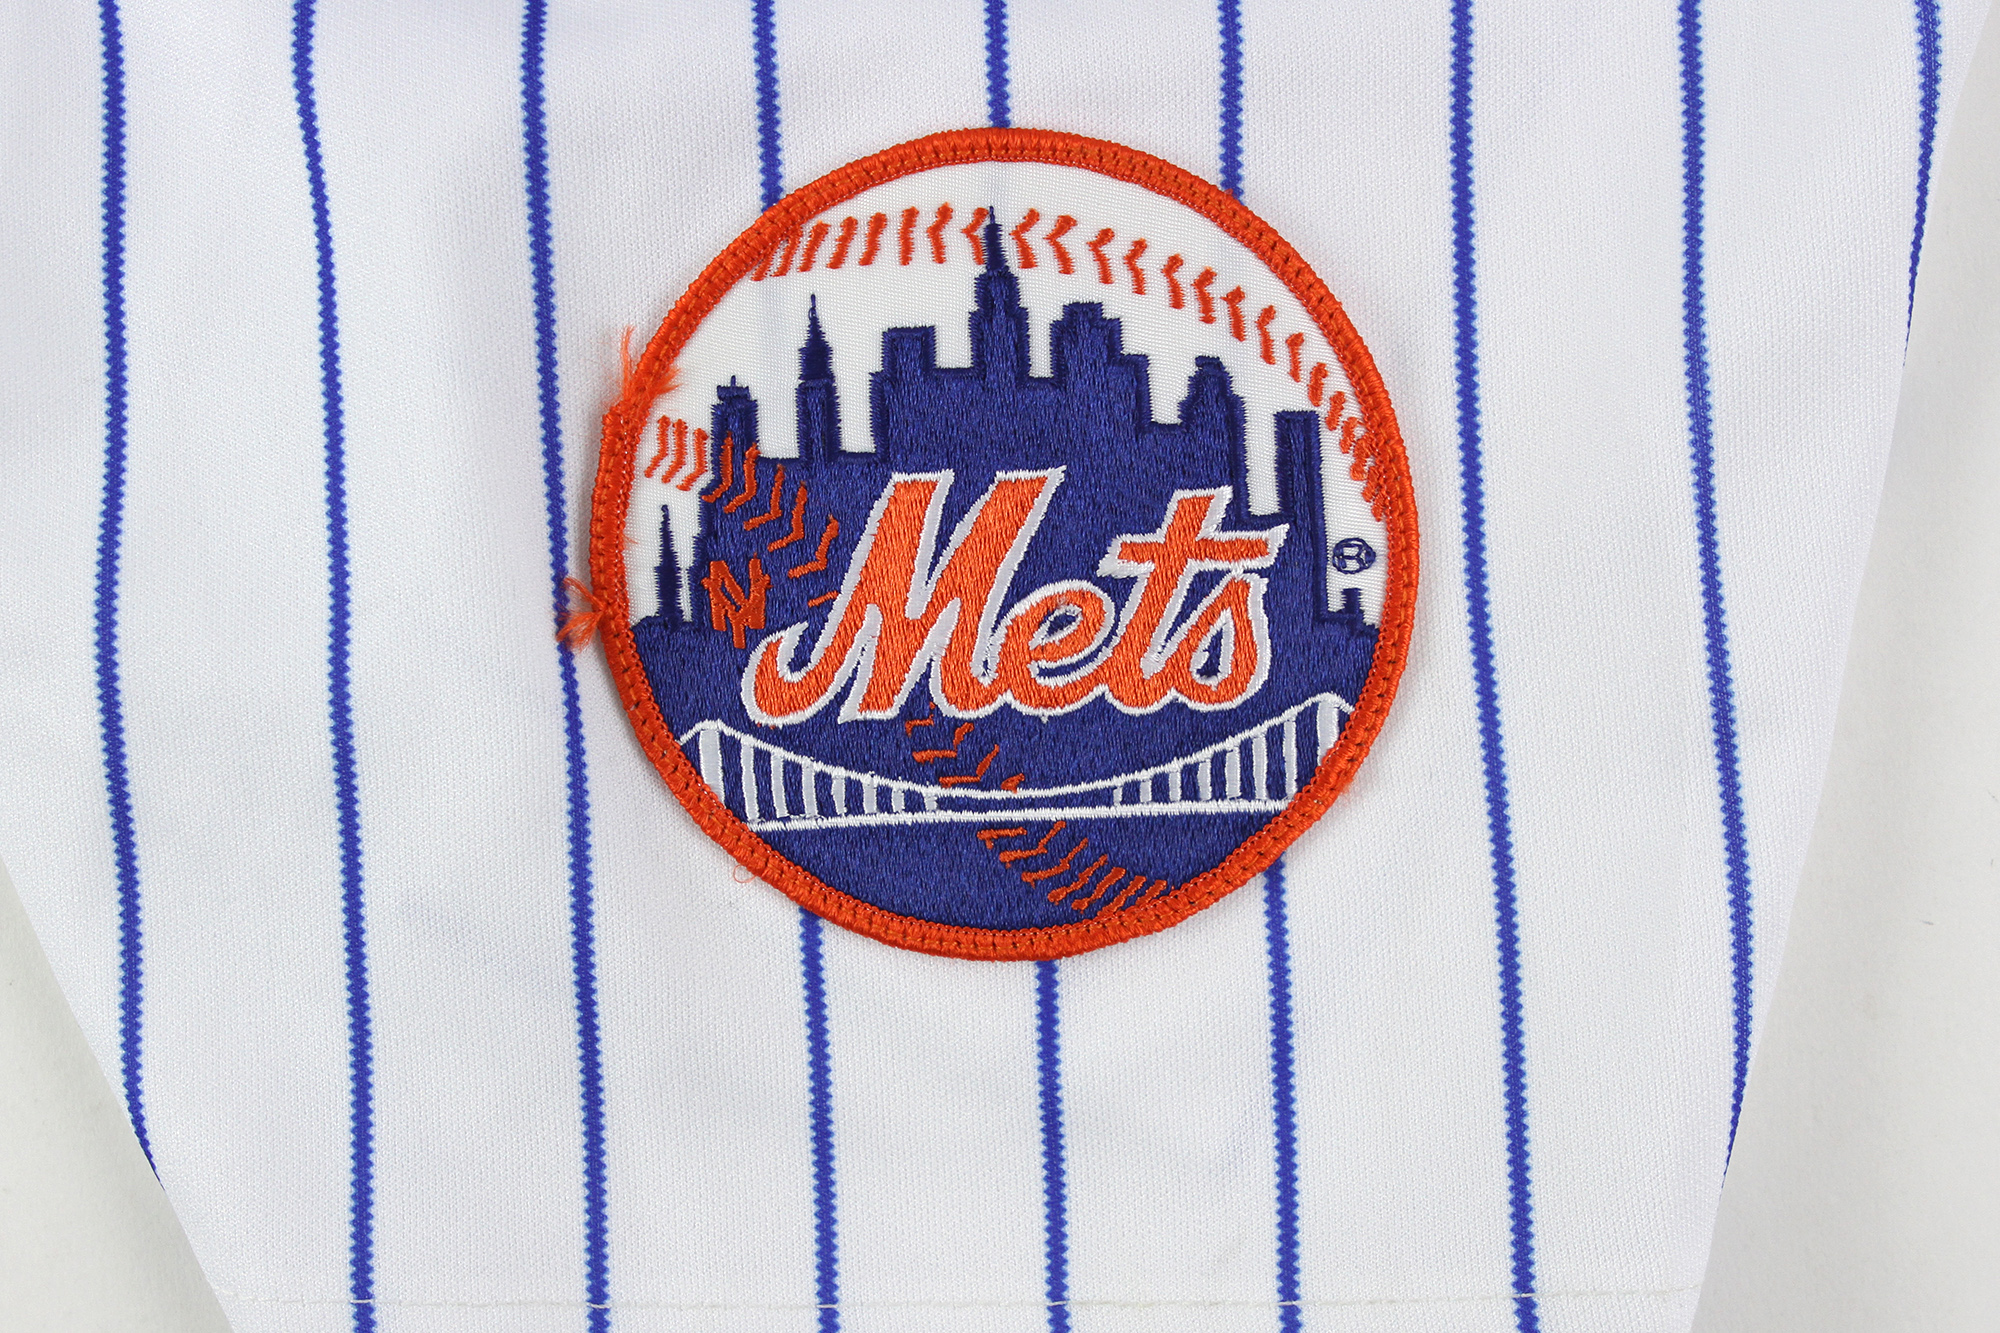 Piazza Team 16 Mike mears And Pants Moises More Issued Including 1998-2007 Detail Of Jersey Worn New York Loa Alou Game - Lot lot Mets cbcfcffbabaeb|Zach's Autograph Collection